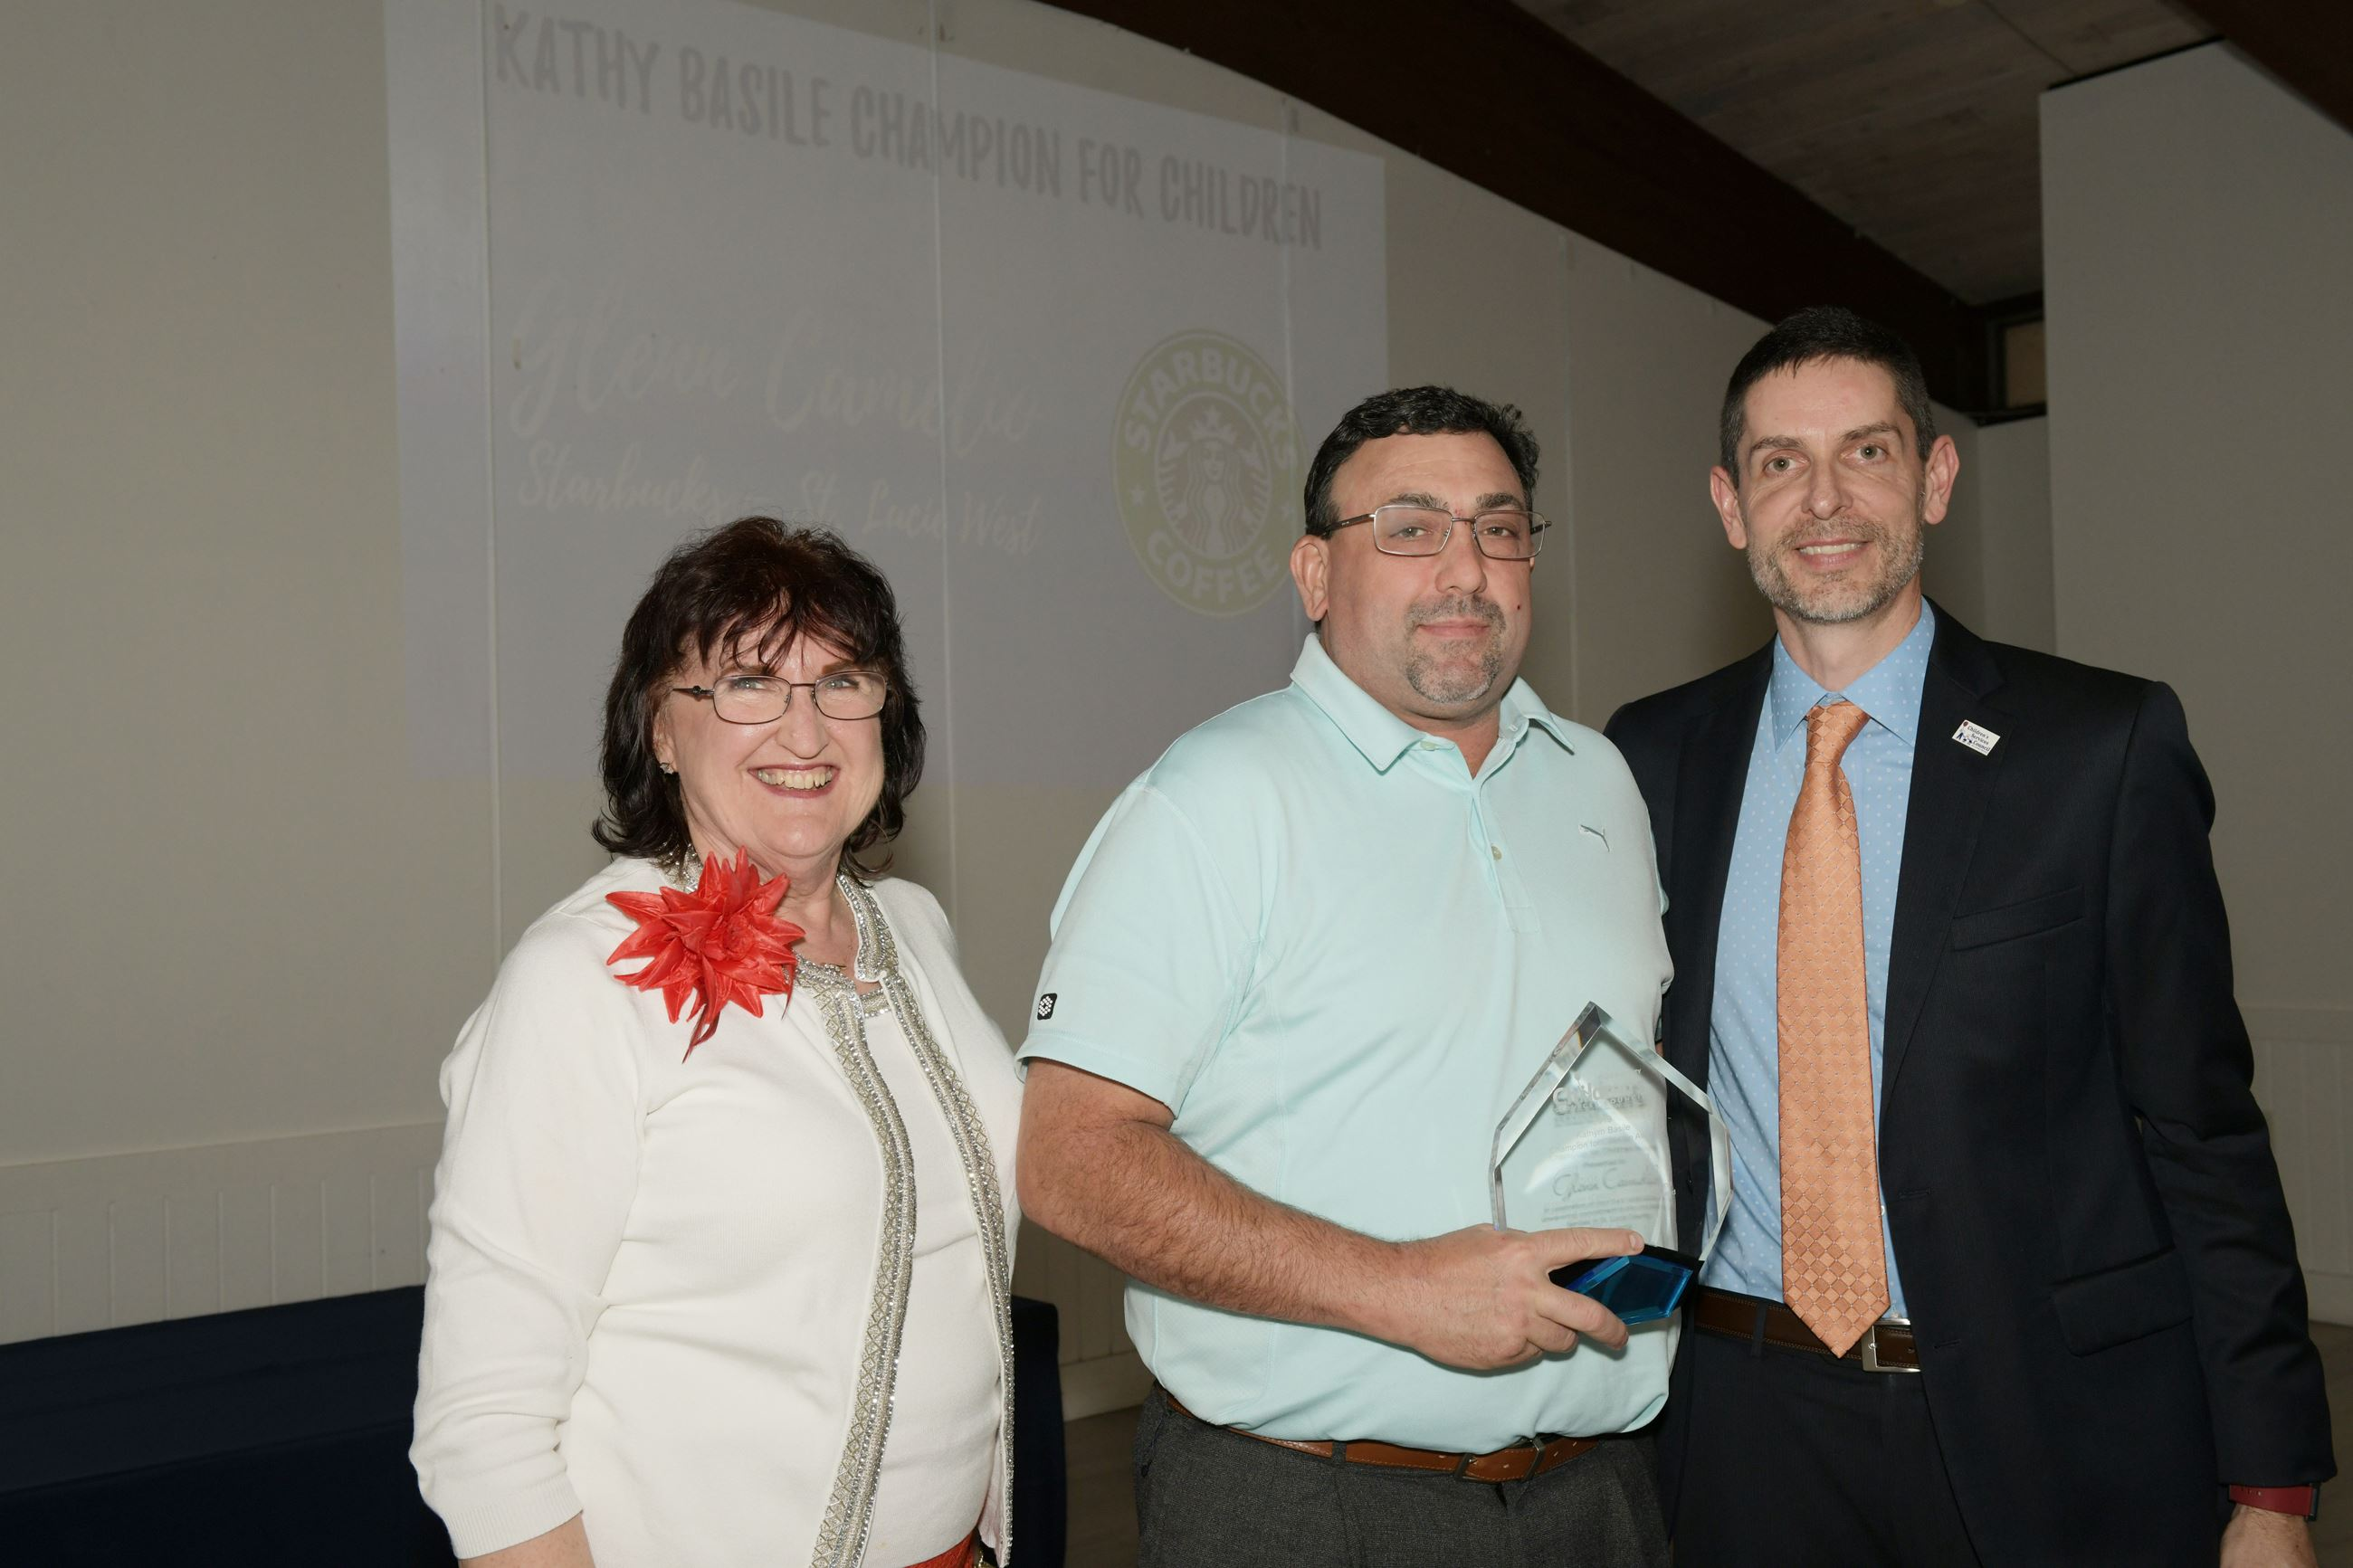 Kathryn Hensley, Kathy Basile Champion for Children award winner Glenn Camelio of Starbucks SLW a